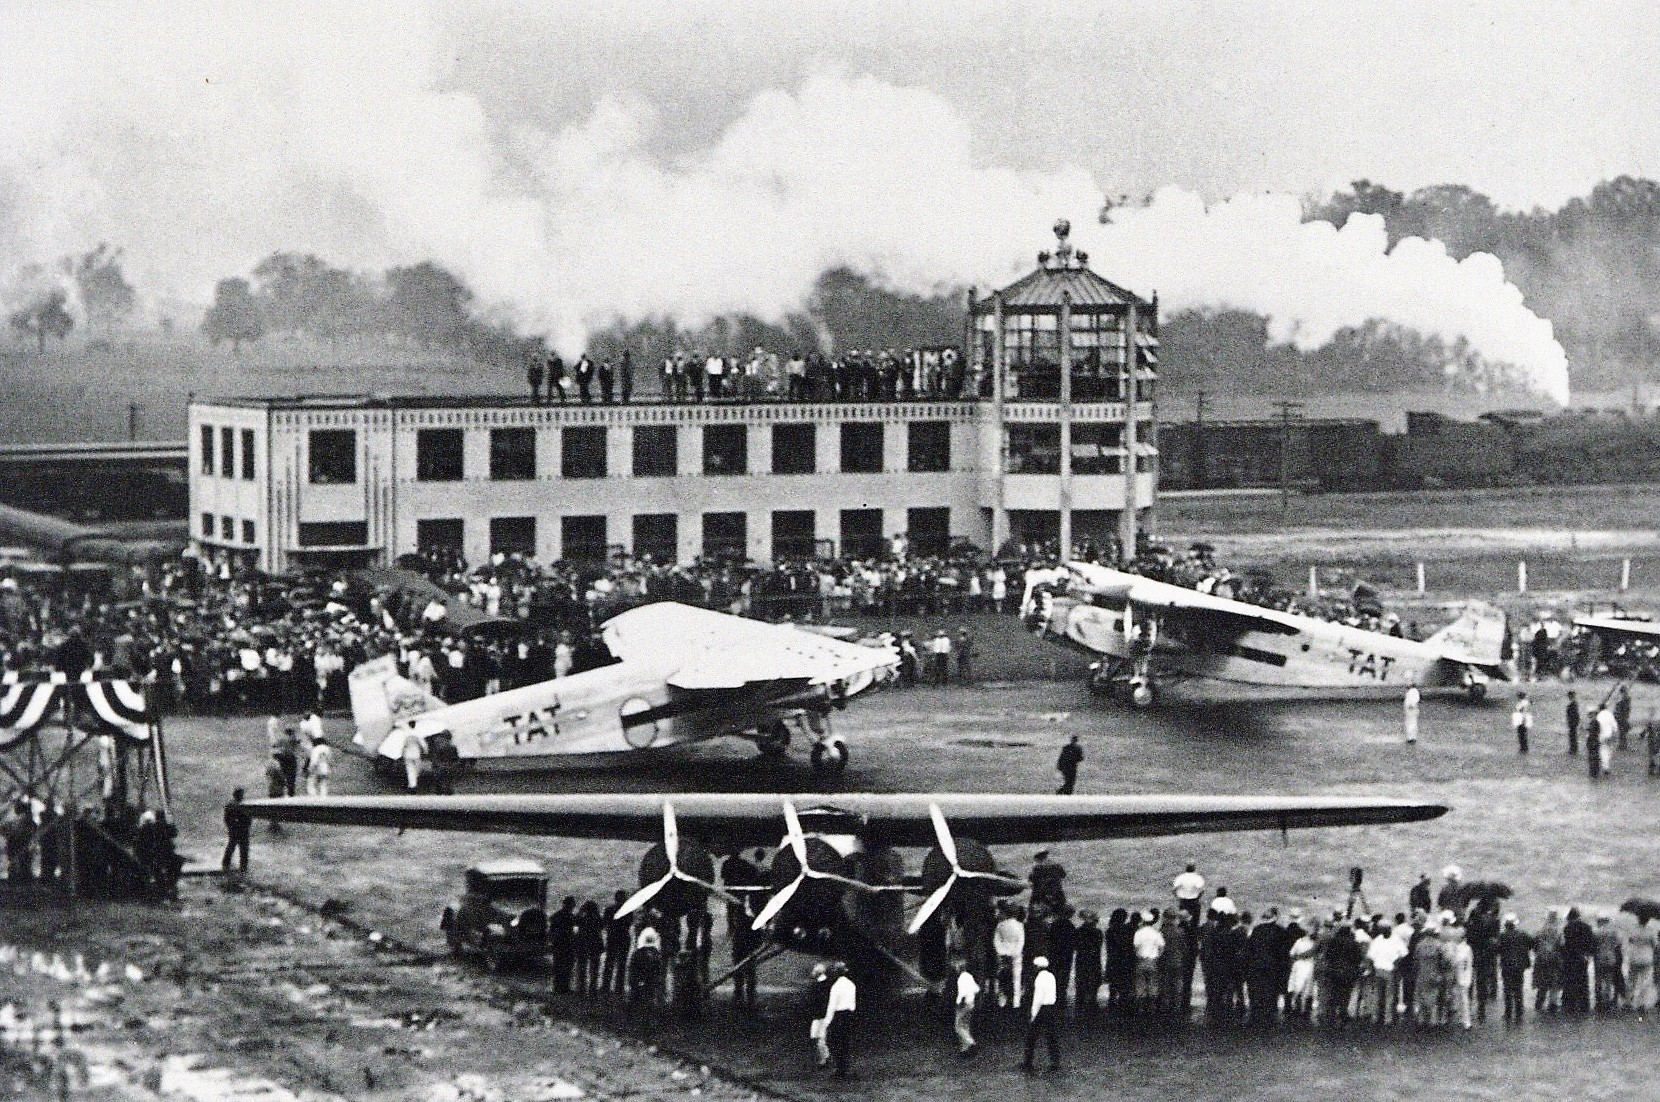 03 TAT - Transcontinental Air Transport Ford Tri-Motors at Port Columbus, Ohio Airport, 8 July 1929, Opening of Eastern Air Link of TAT's First Rail-Air, NY to CA